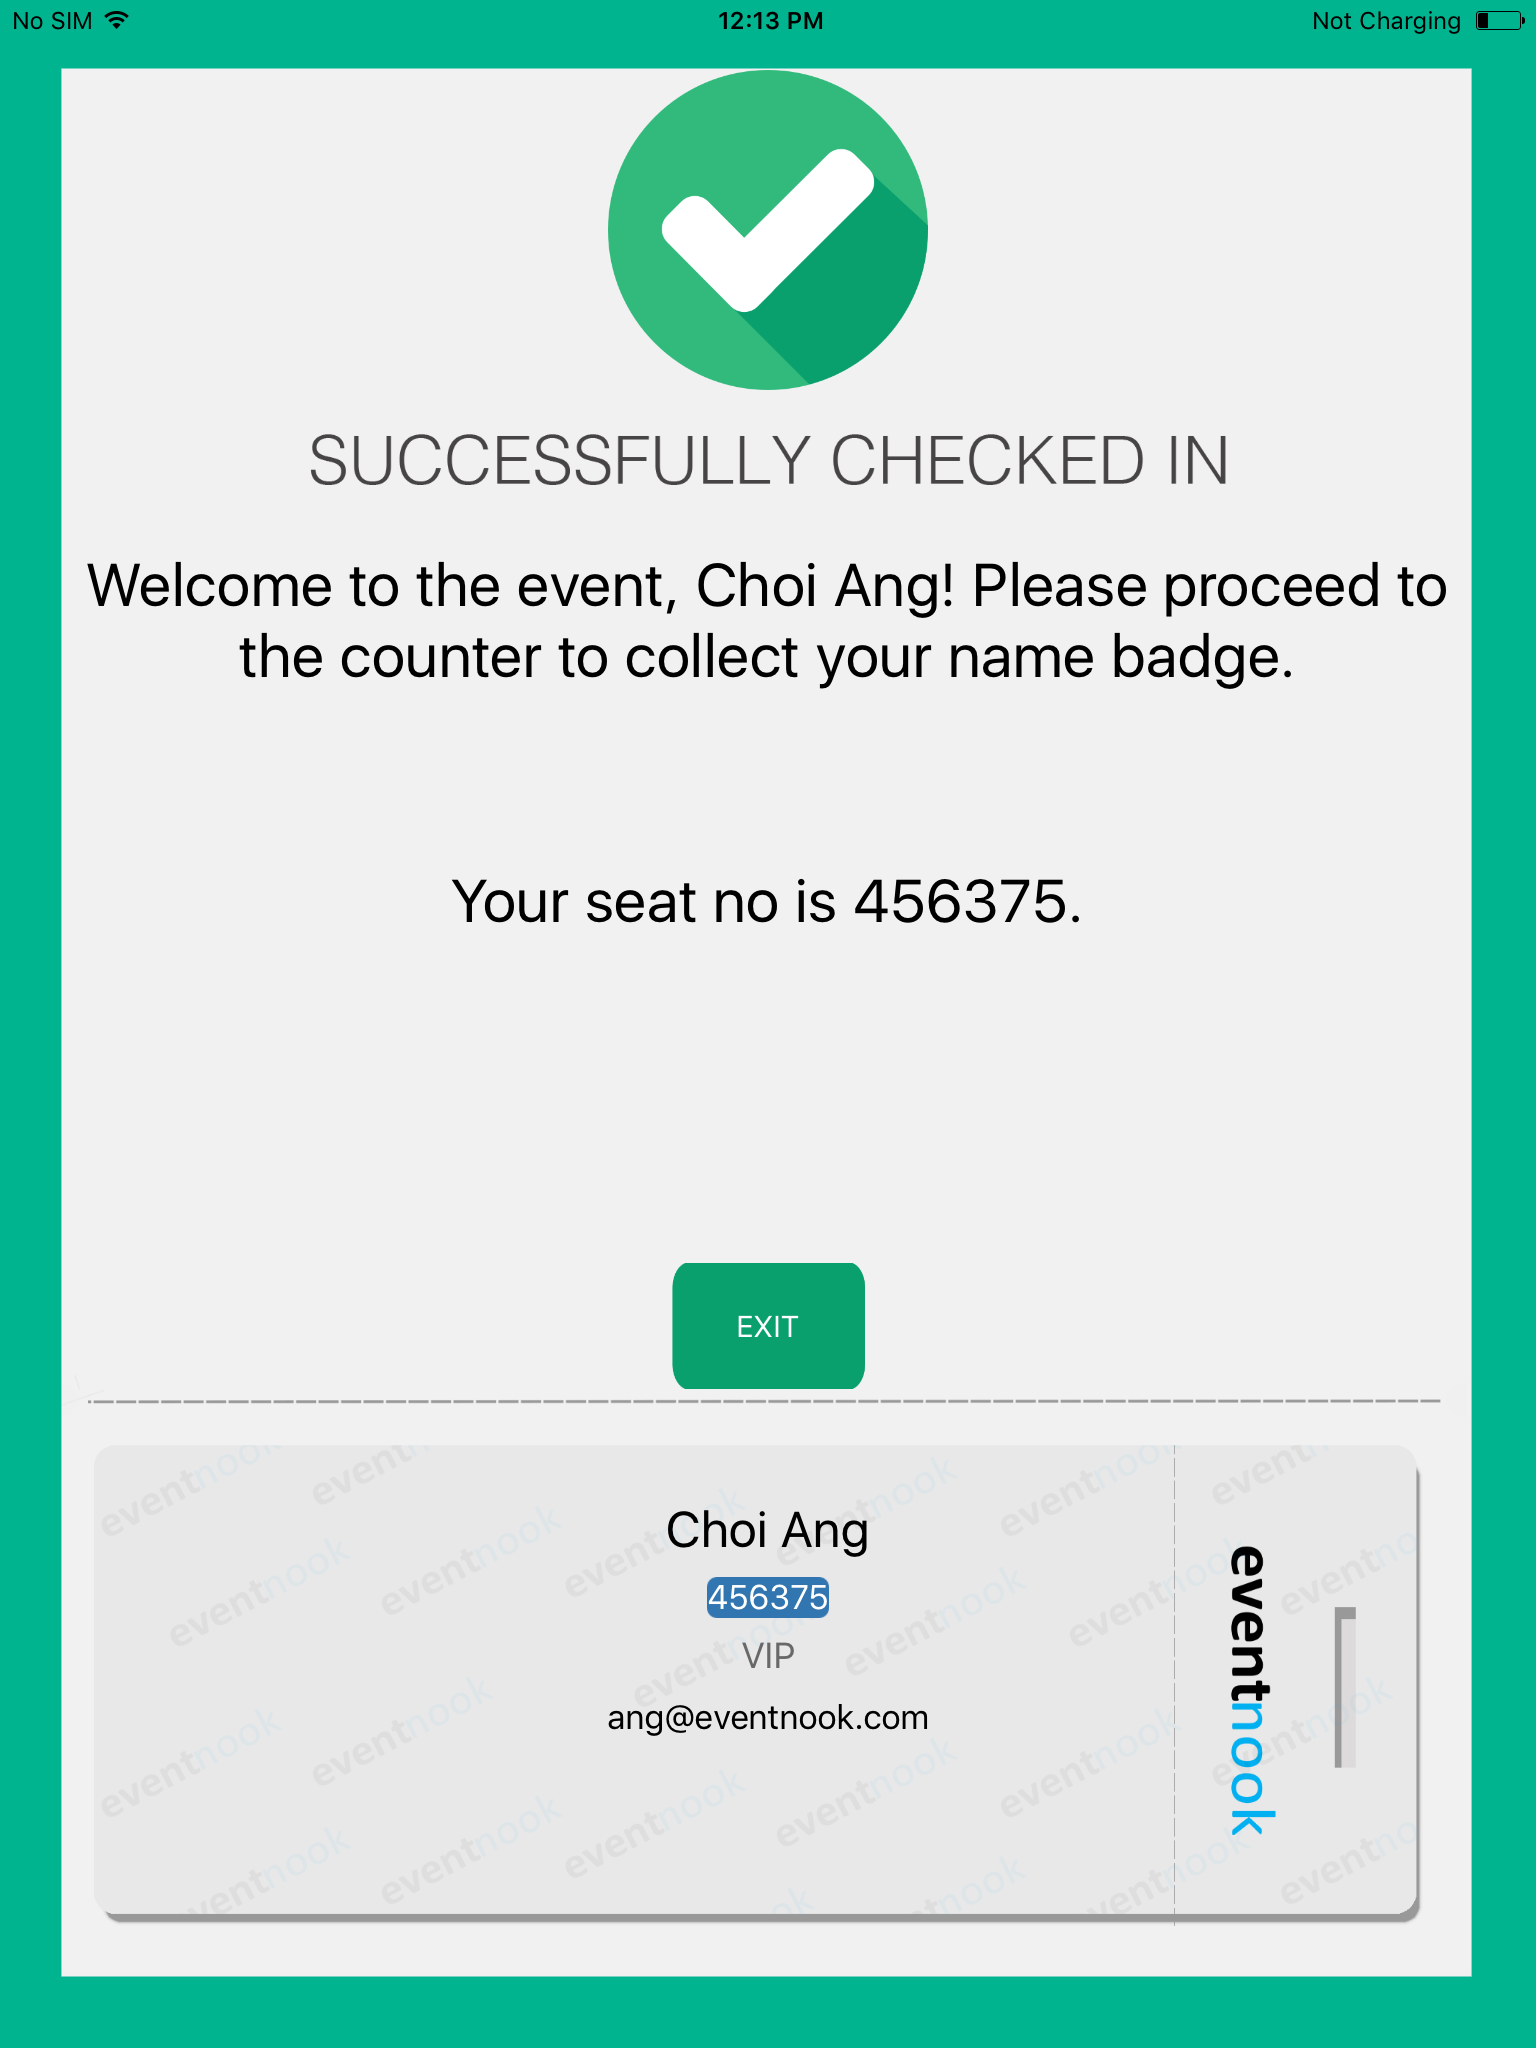 Success Check-in Message